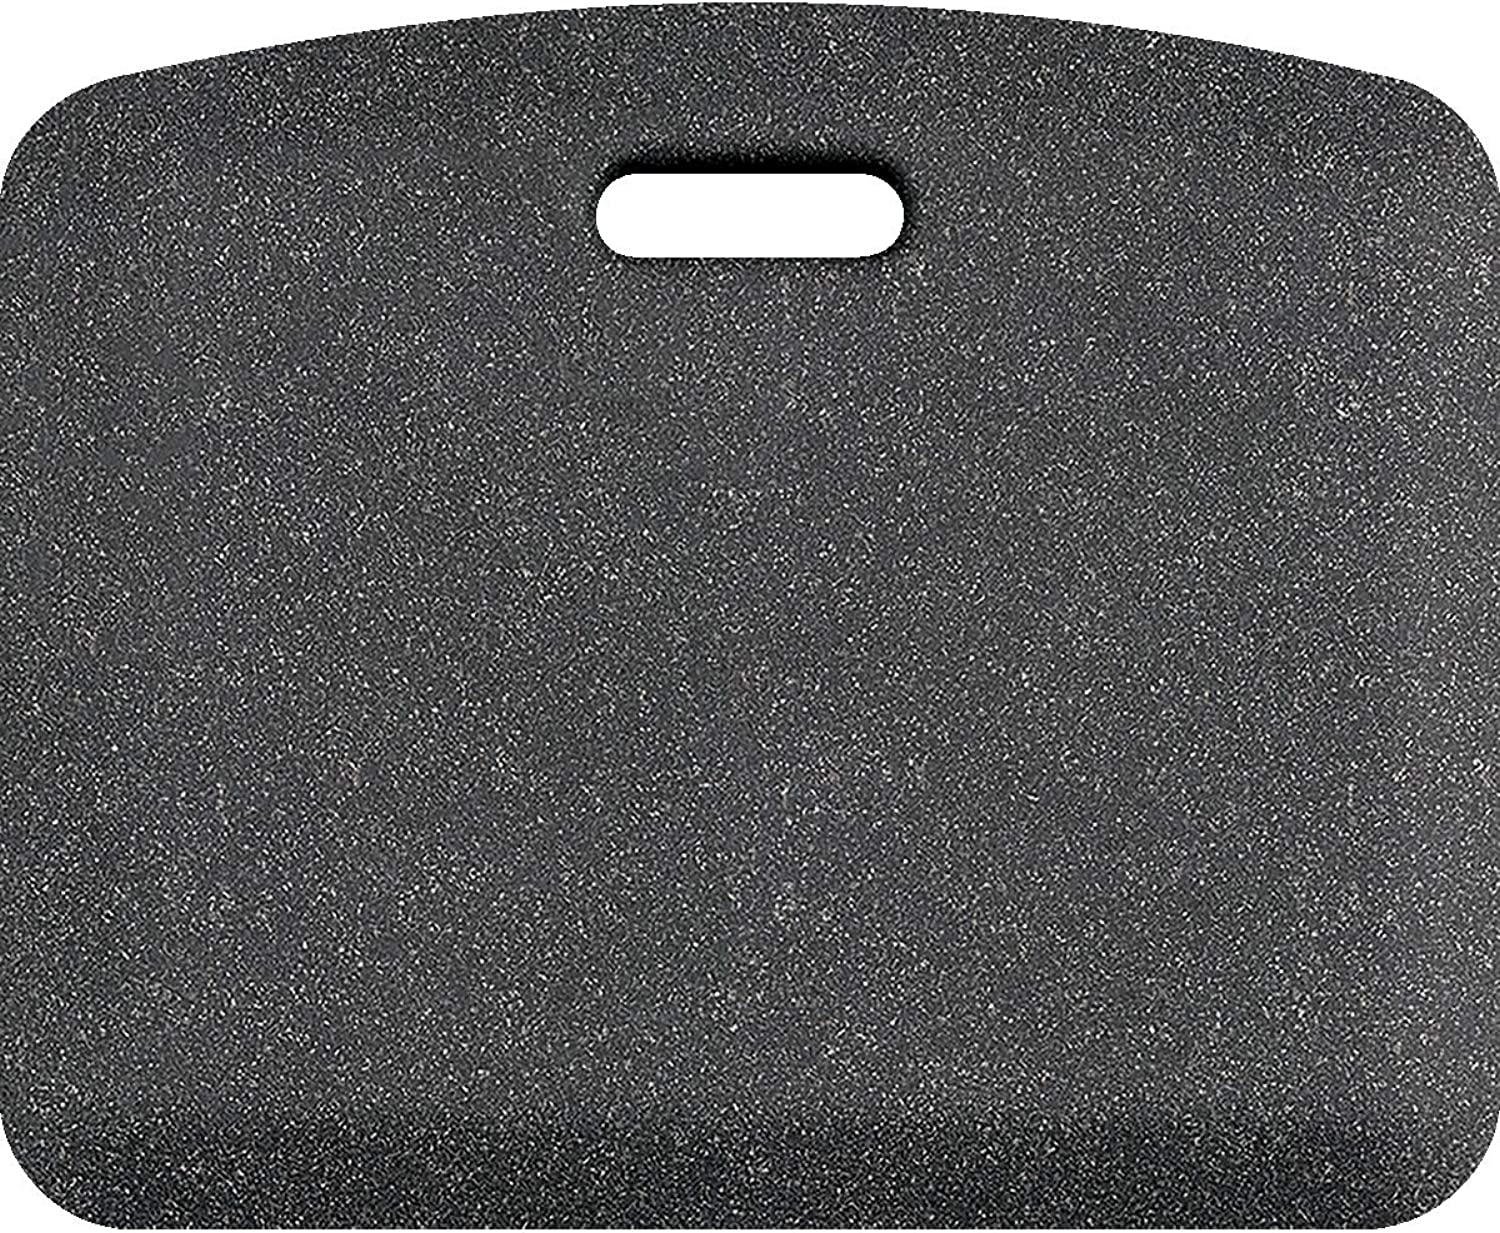 WellnessMats Granite Anti-Fatigue Mat - Comfort, Support & Style - Non-Slip, Non-Toxic - 18 x22 x 3 4  Granite Steel